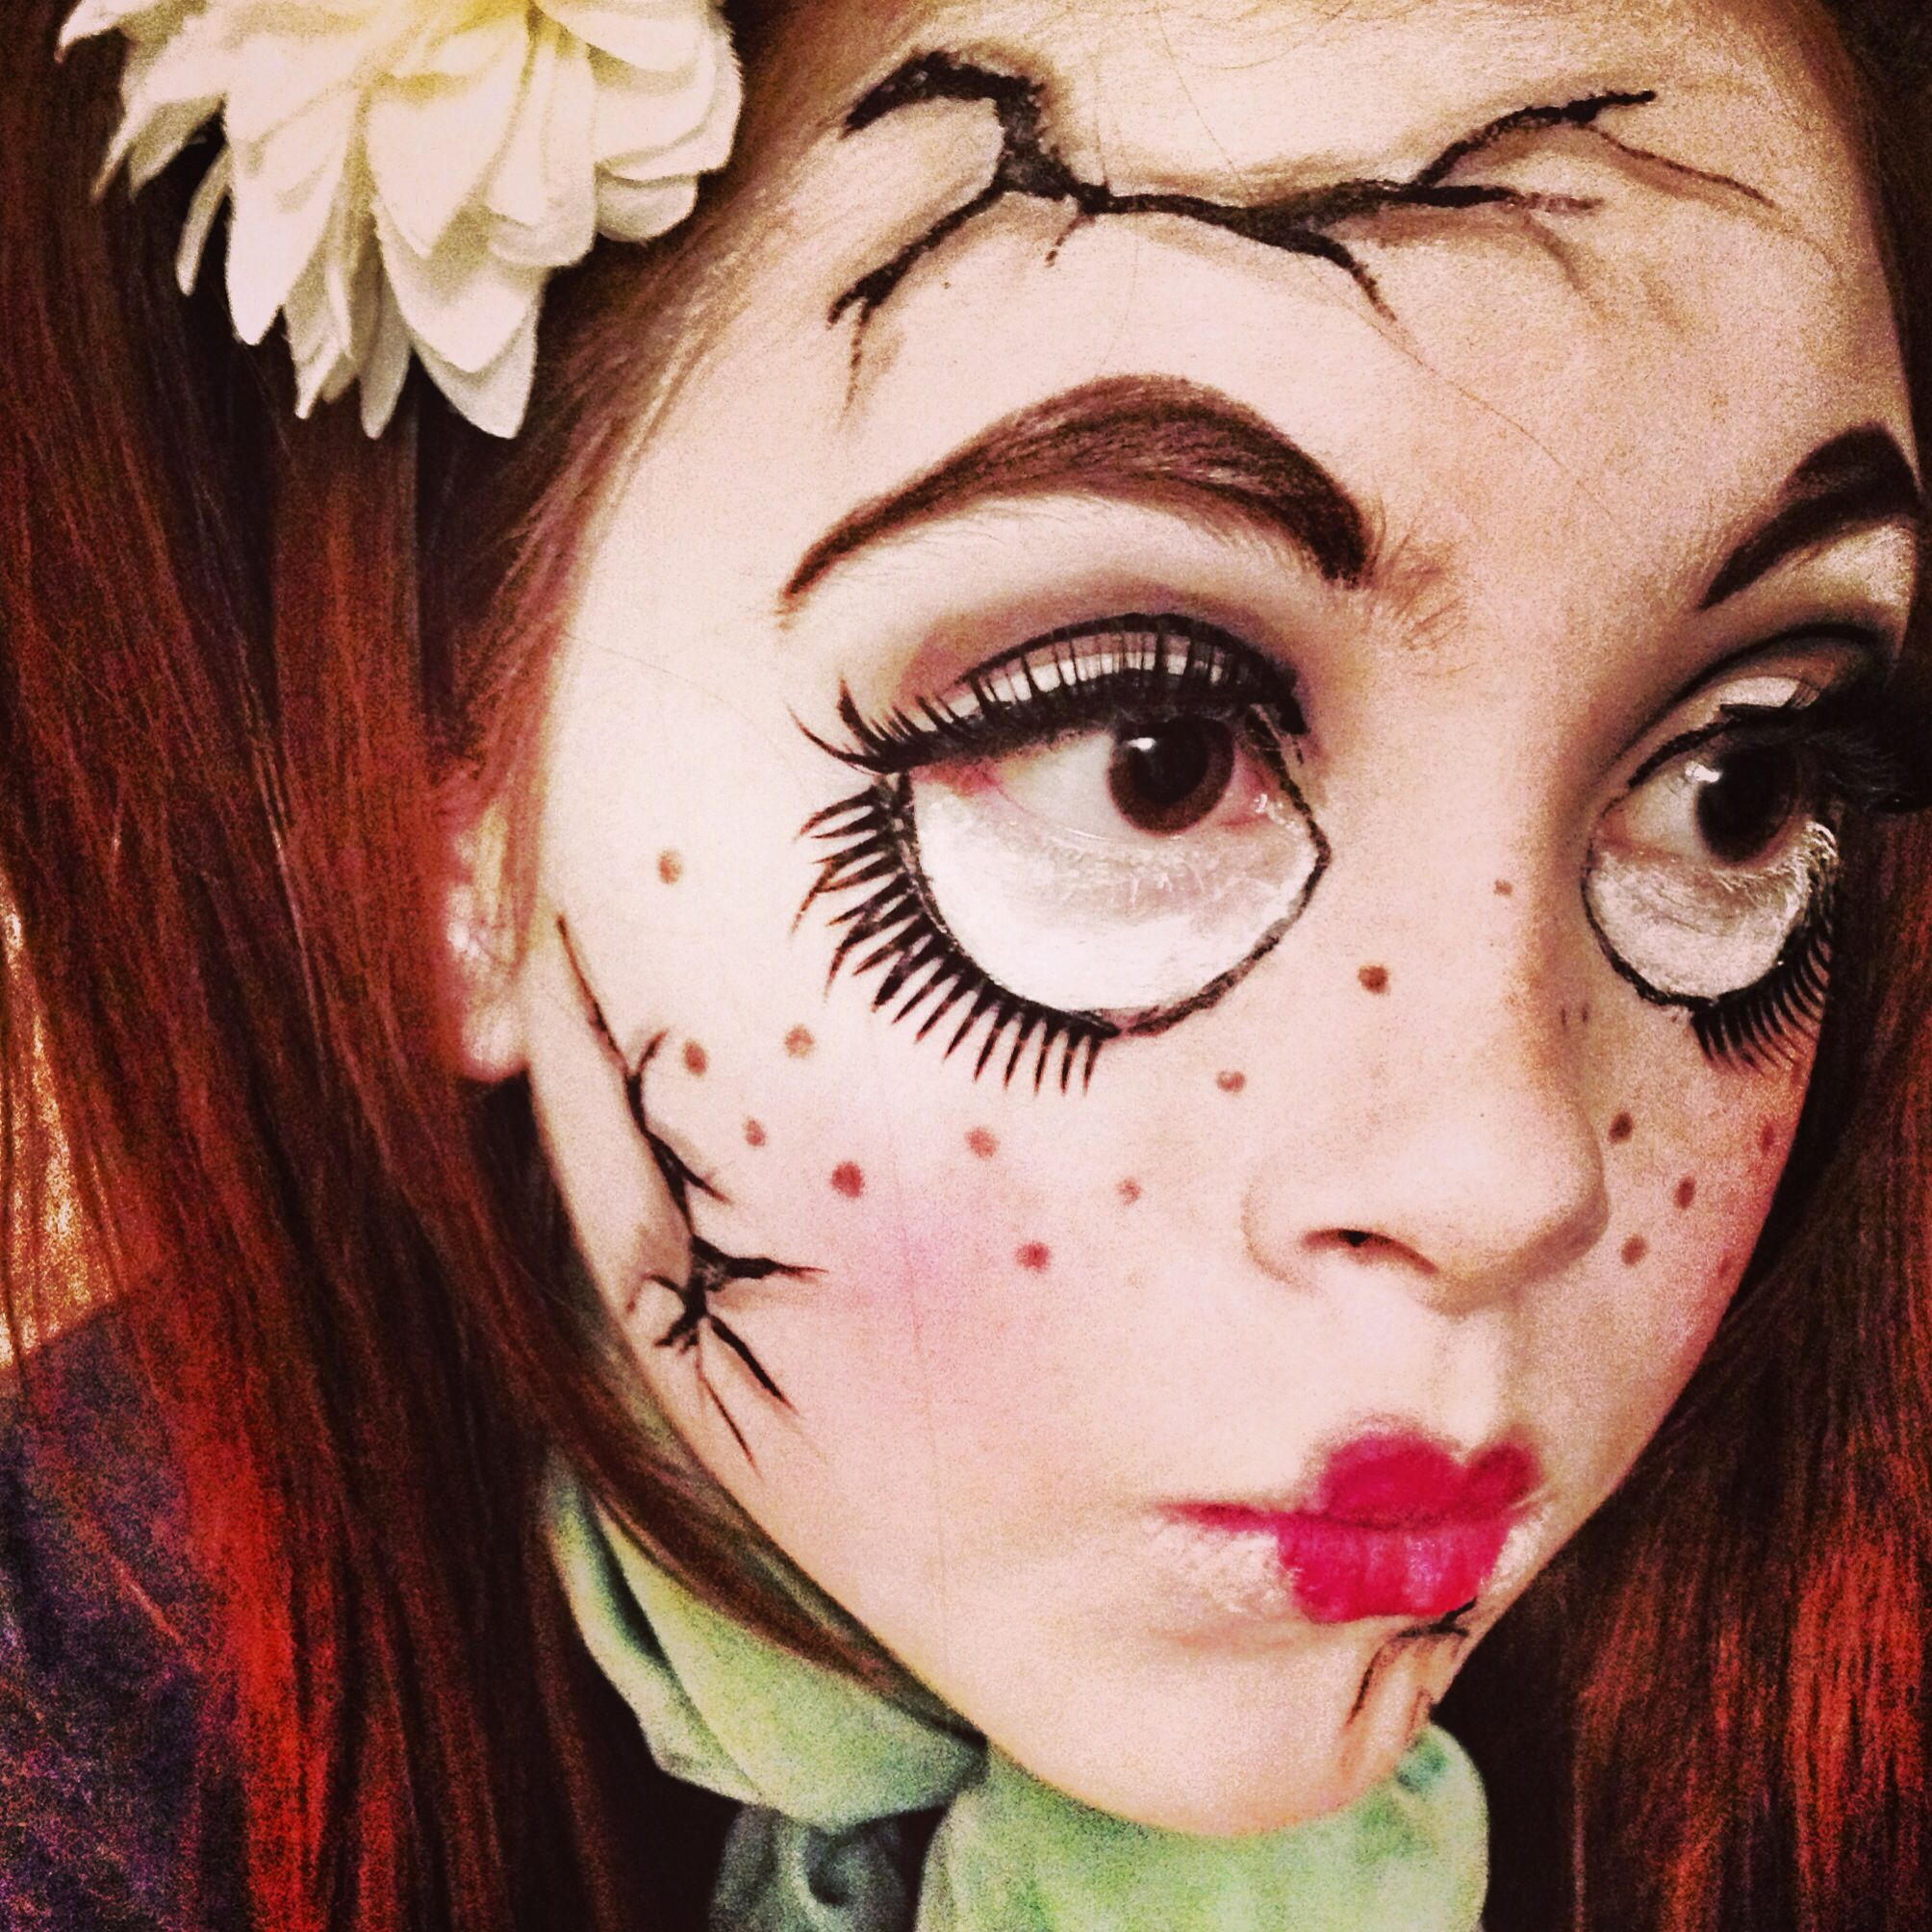 creepy cracked doll makeup #makeup #crackeddoll #porcelaindoll